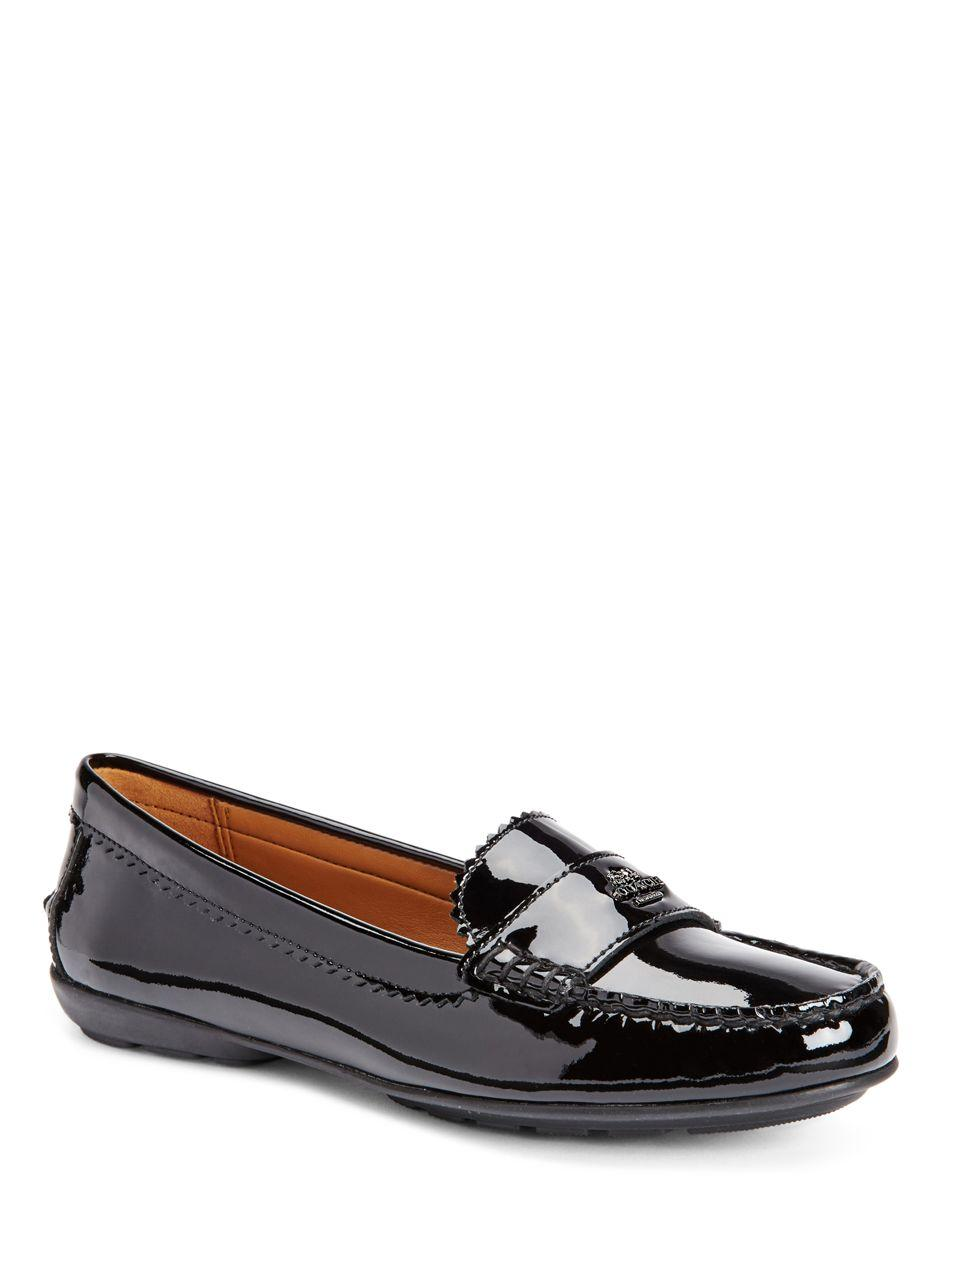 Lyst Coach Odette Patent Leather Loafers In Black